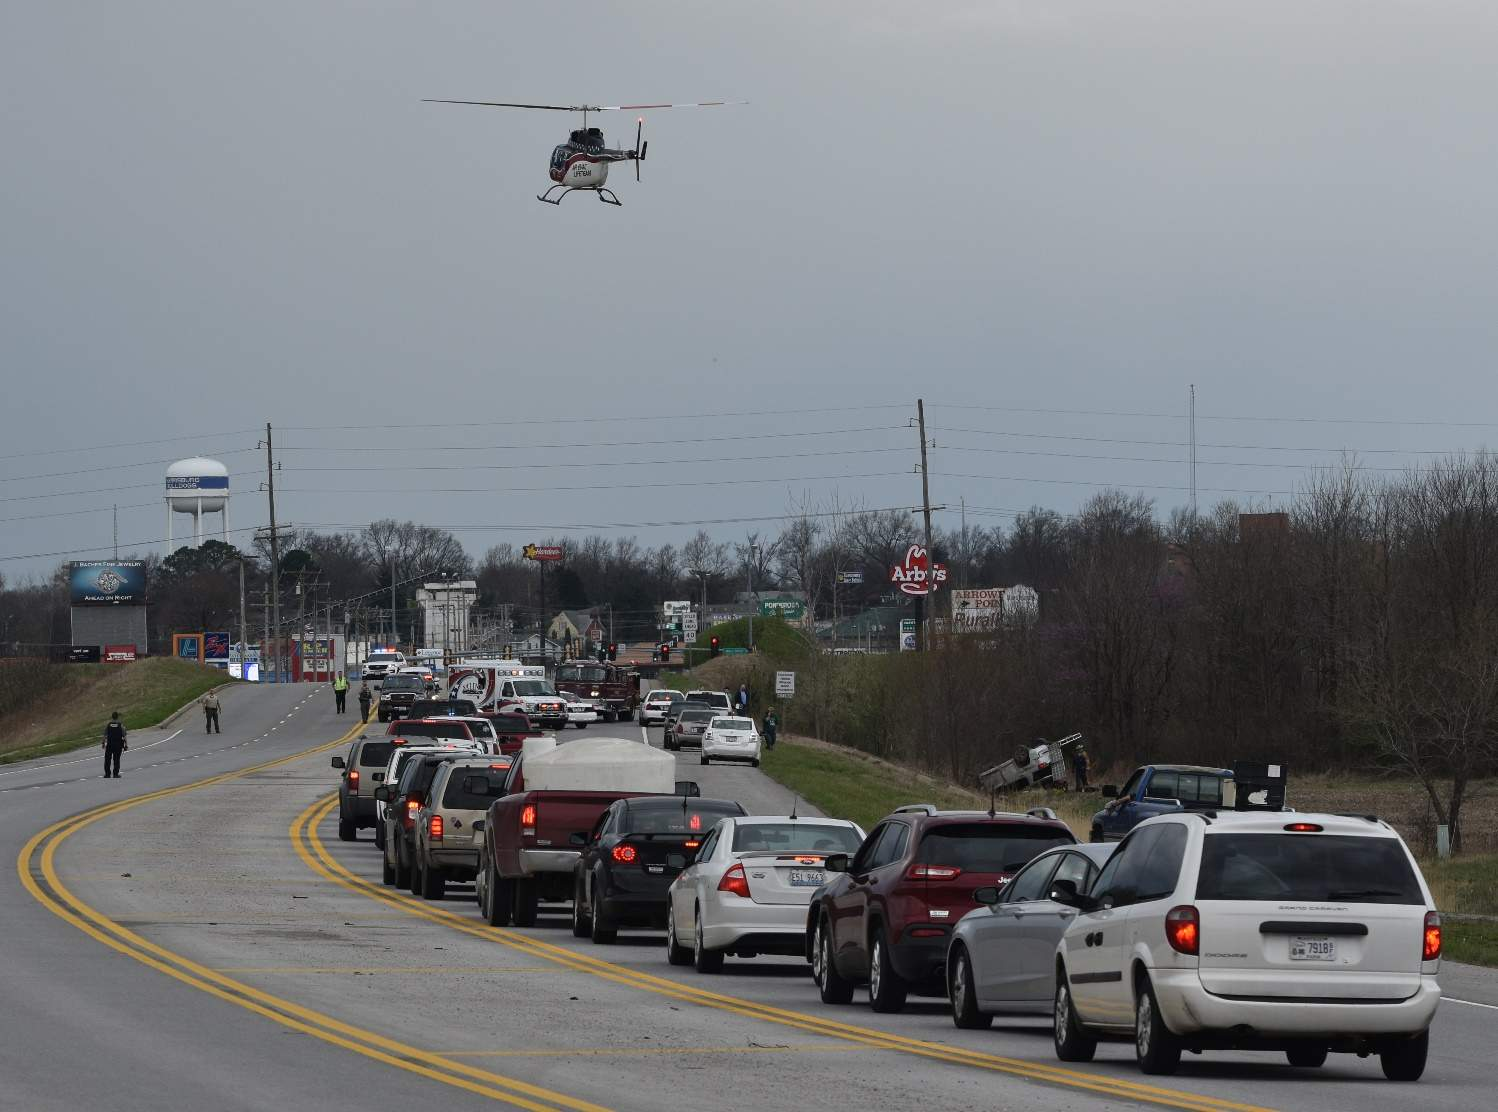 A Lifeflight helicopter prepares to land after police and emergency workers responded to a one-car wreck north of Harrisburg. U.S. 45 was shut down as a result.